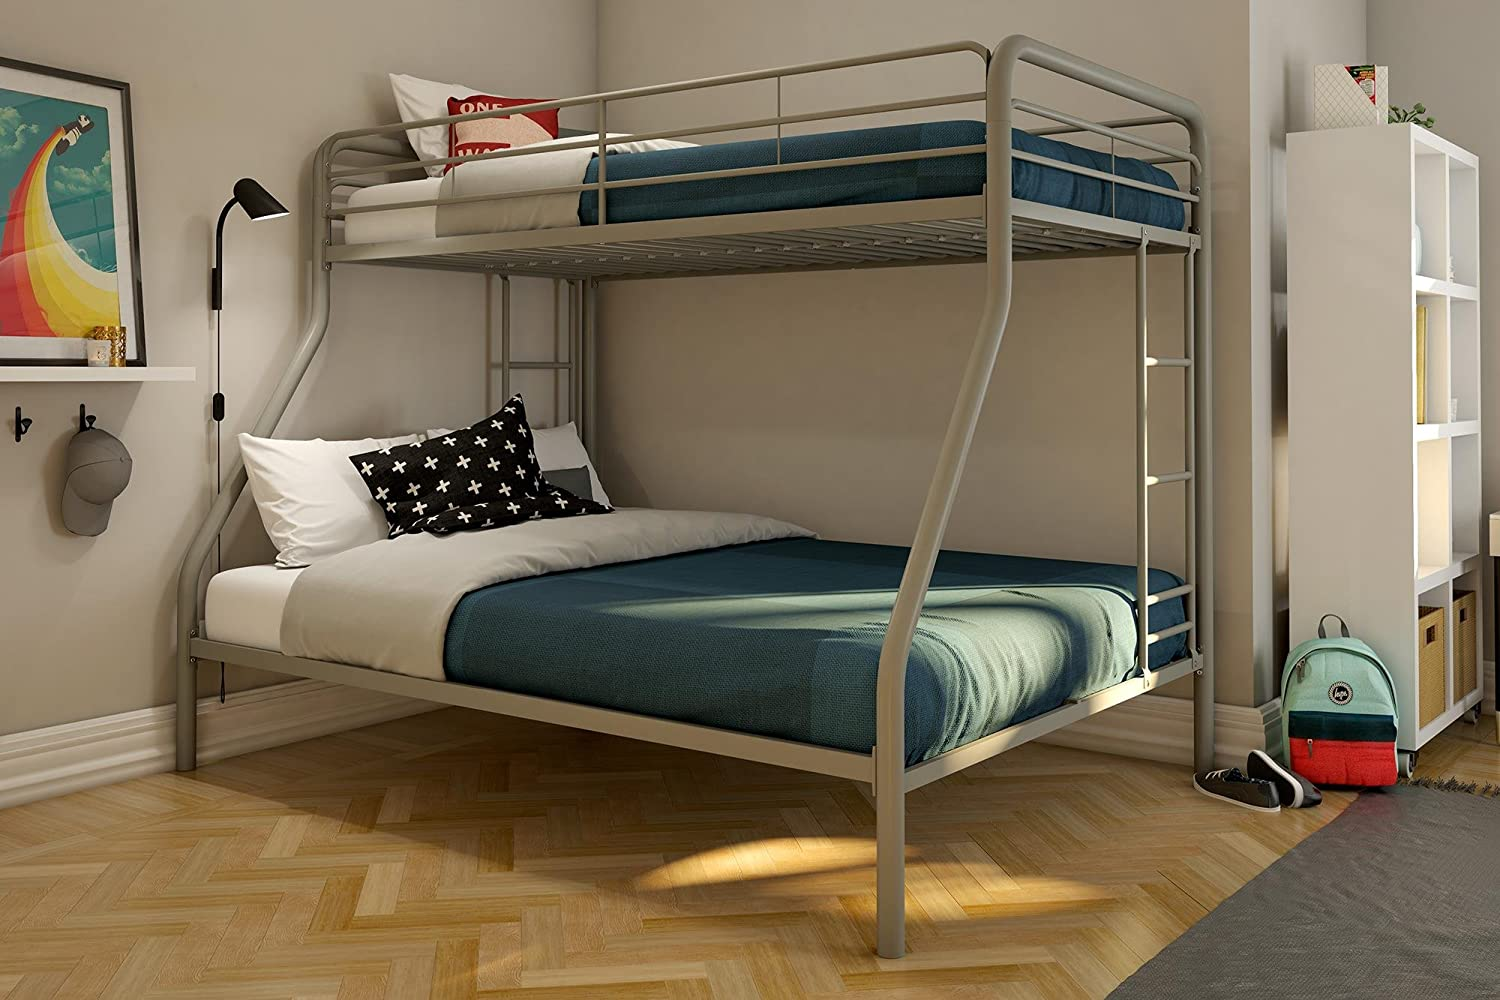 Full Over Full Bunk Beds With Mattresses Included Cheaper Than Retail Price Buy Clothing Accessories And Lifestyle Products For Women Men